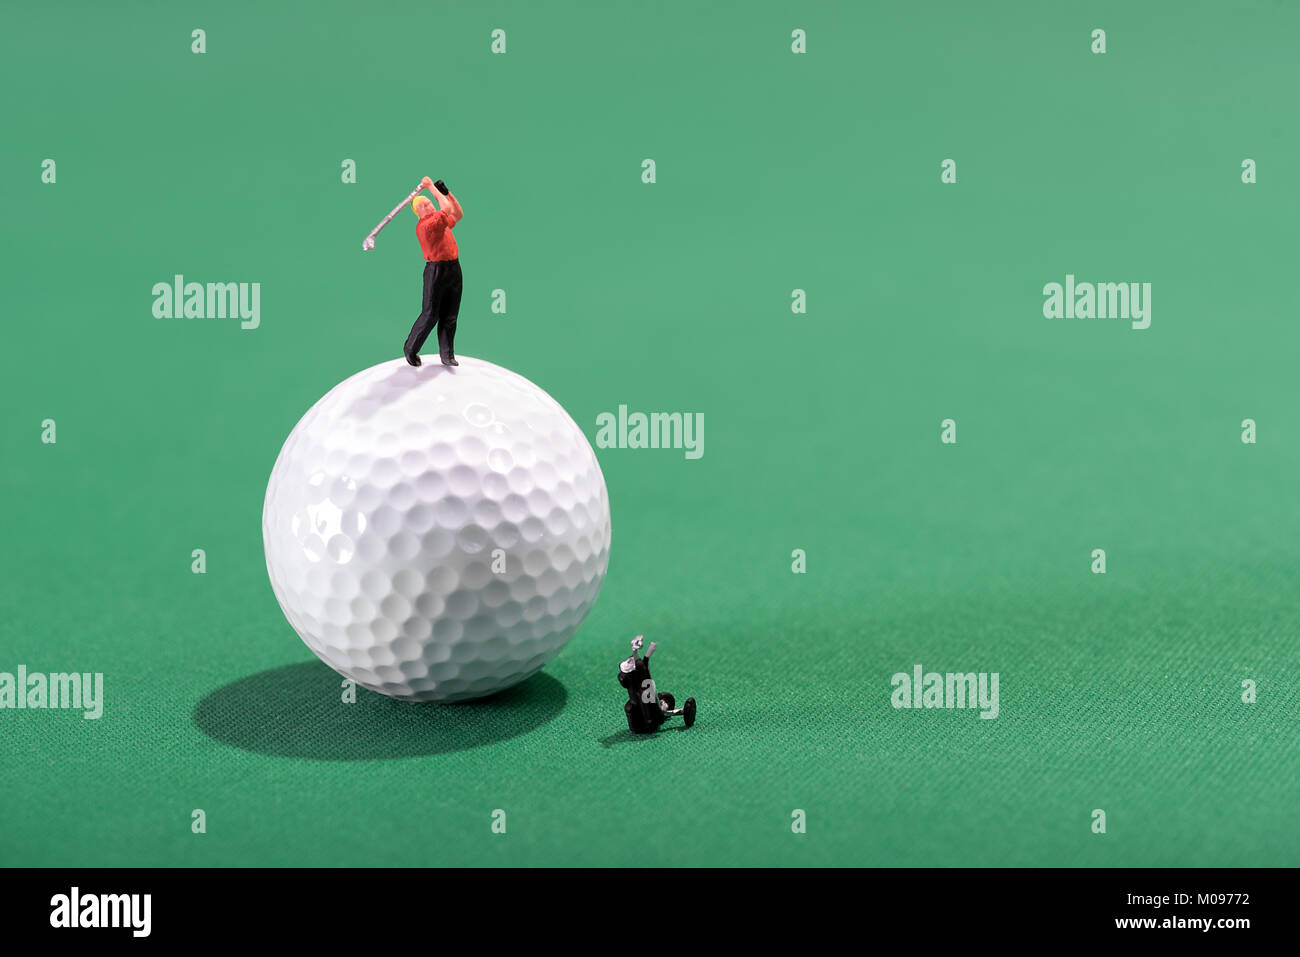 Miniature golfer teeing-off from on top of a ball on a green baize background with copy space - Stock Image